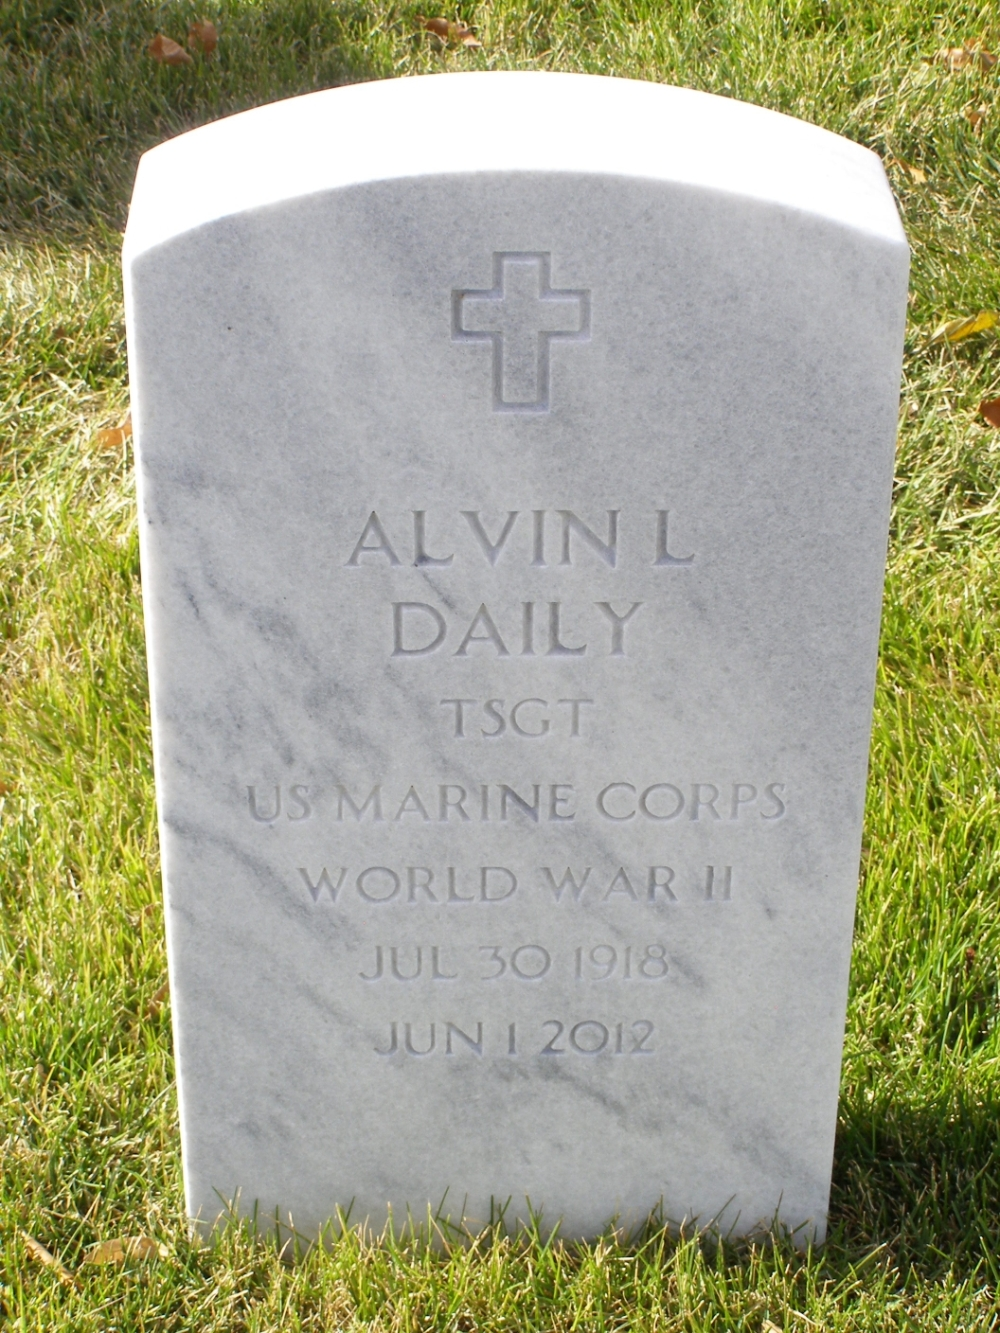 Alvin Leon Daily July 30, 1918 - June 1, 2012 Grave Marker